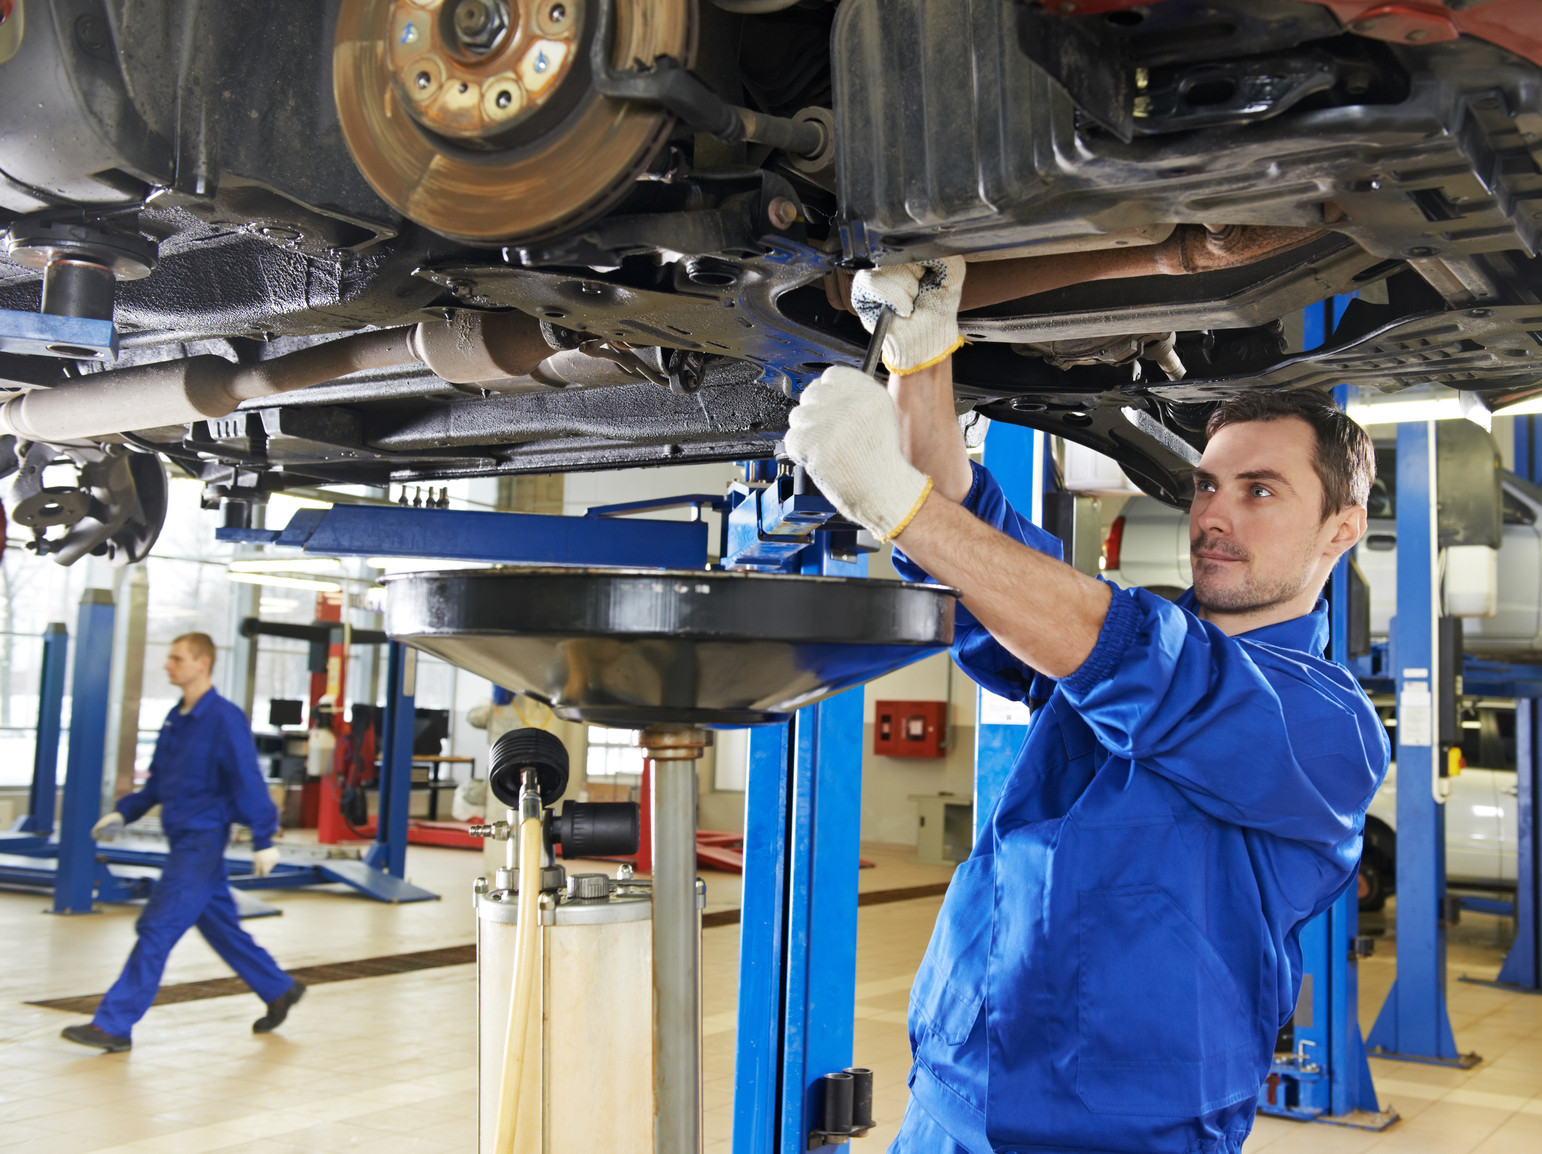 The ford certified repair technicians at jim hatheway ford utilize the very latest in equipment to professionally repair and maintain your car